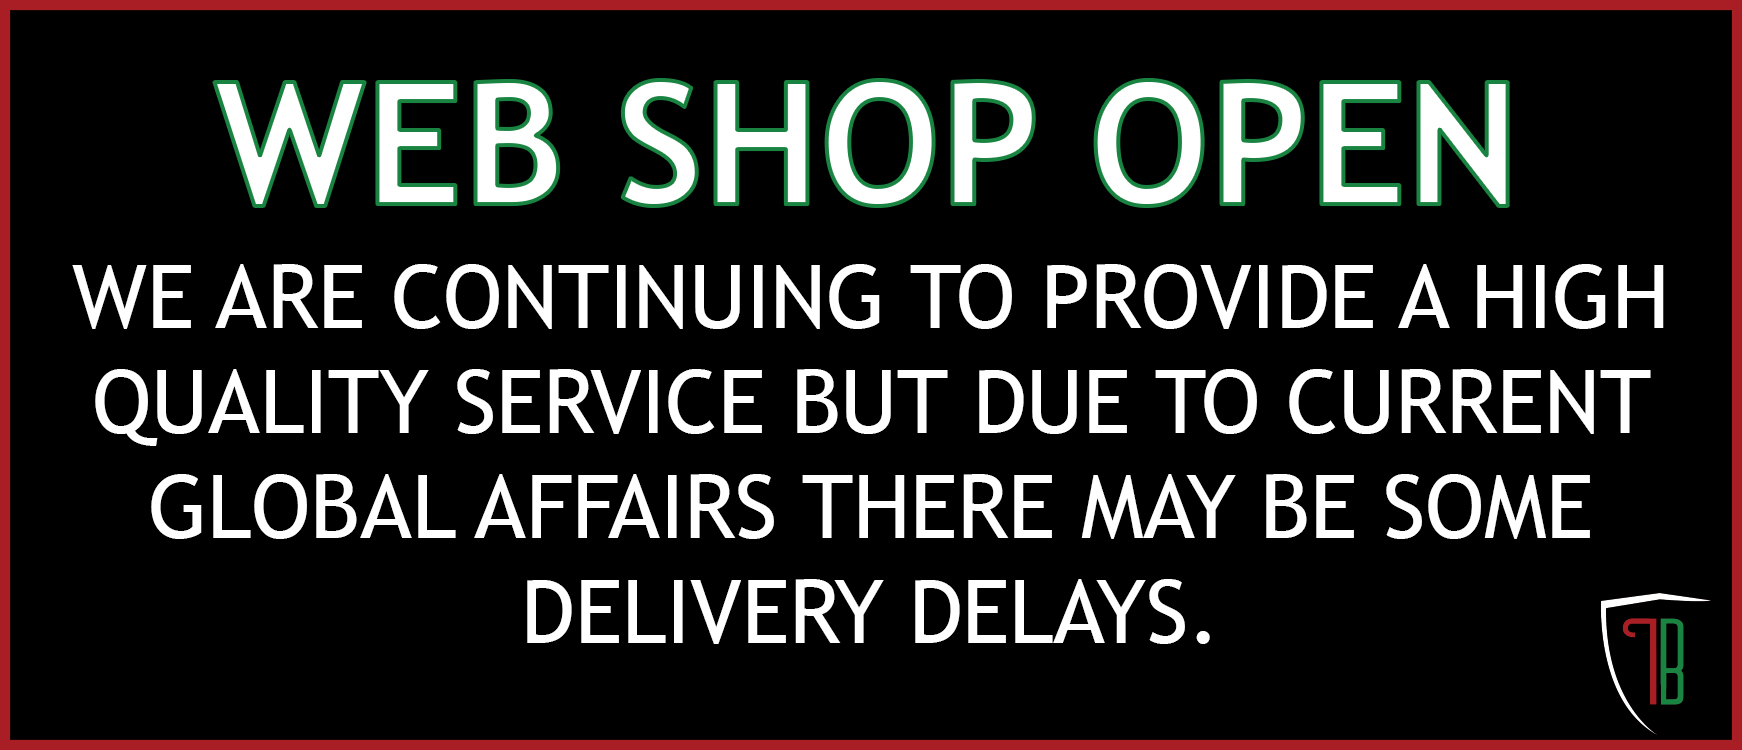 SHIPPING DELAY DUE TO COVID-19